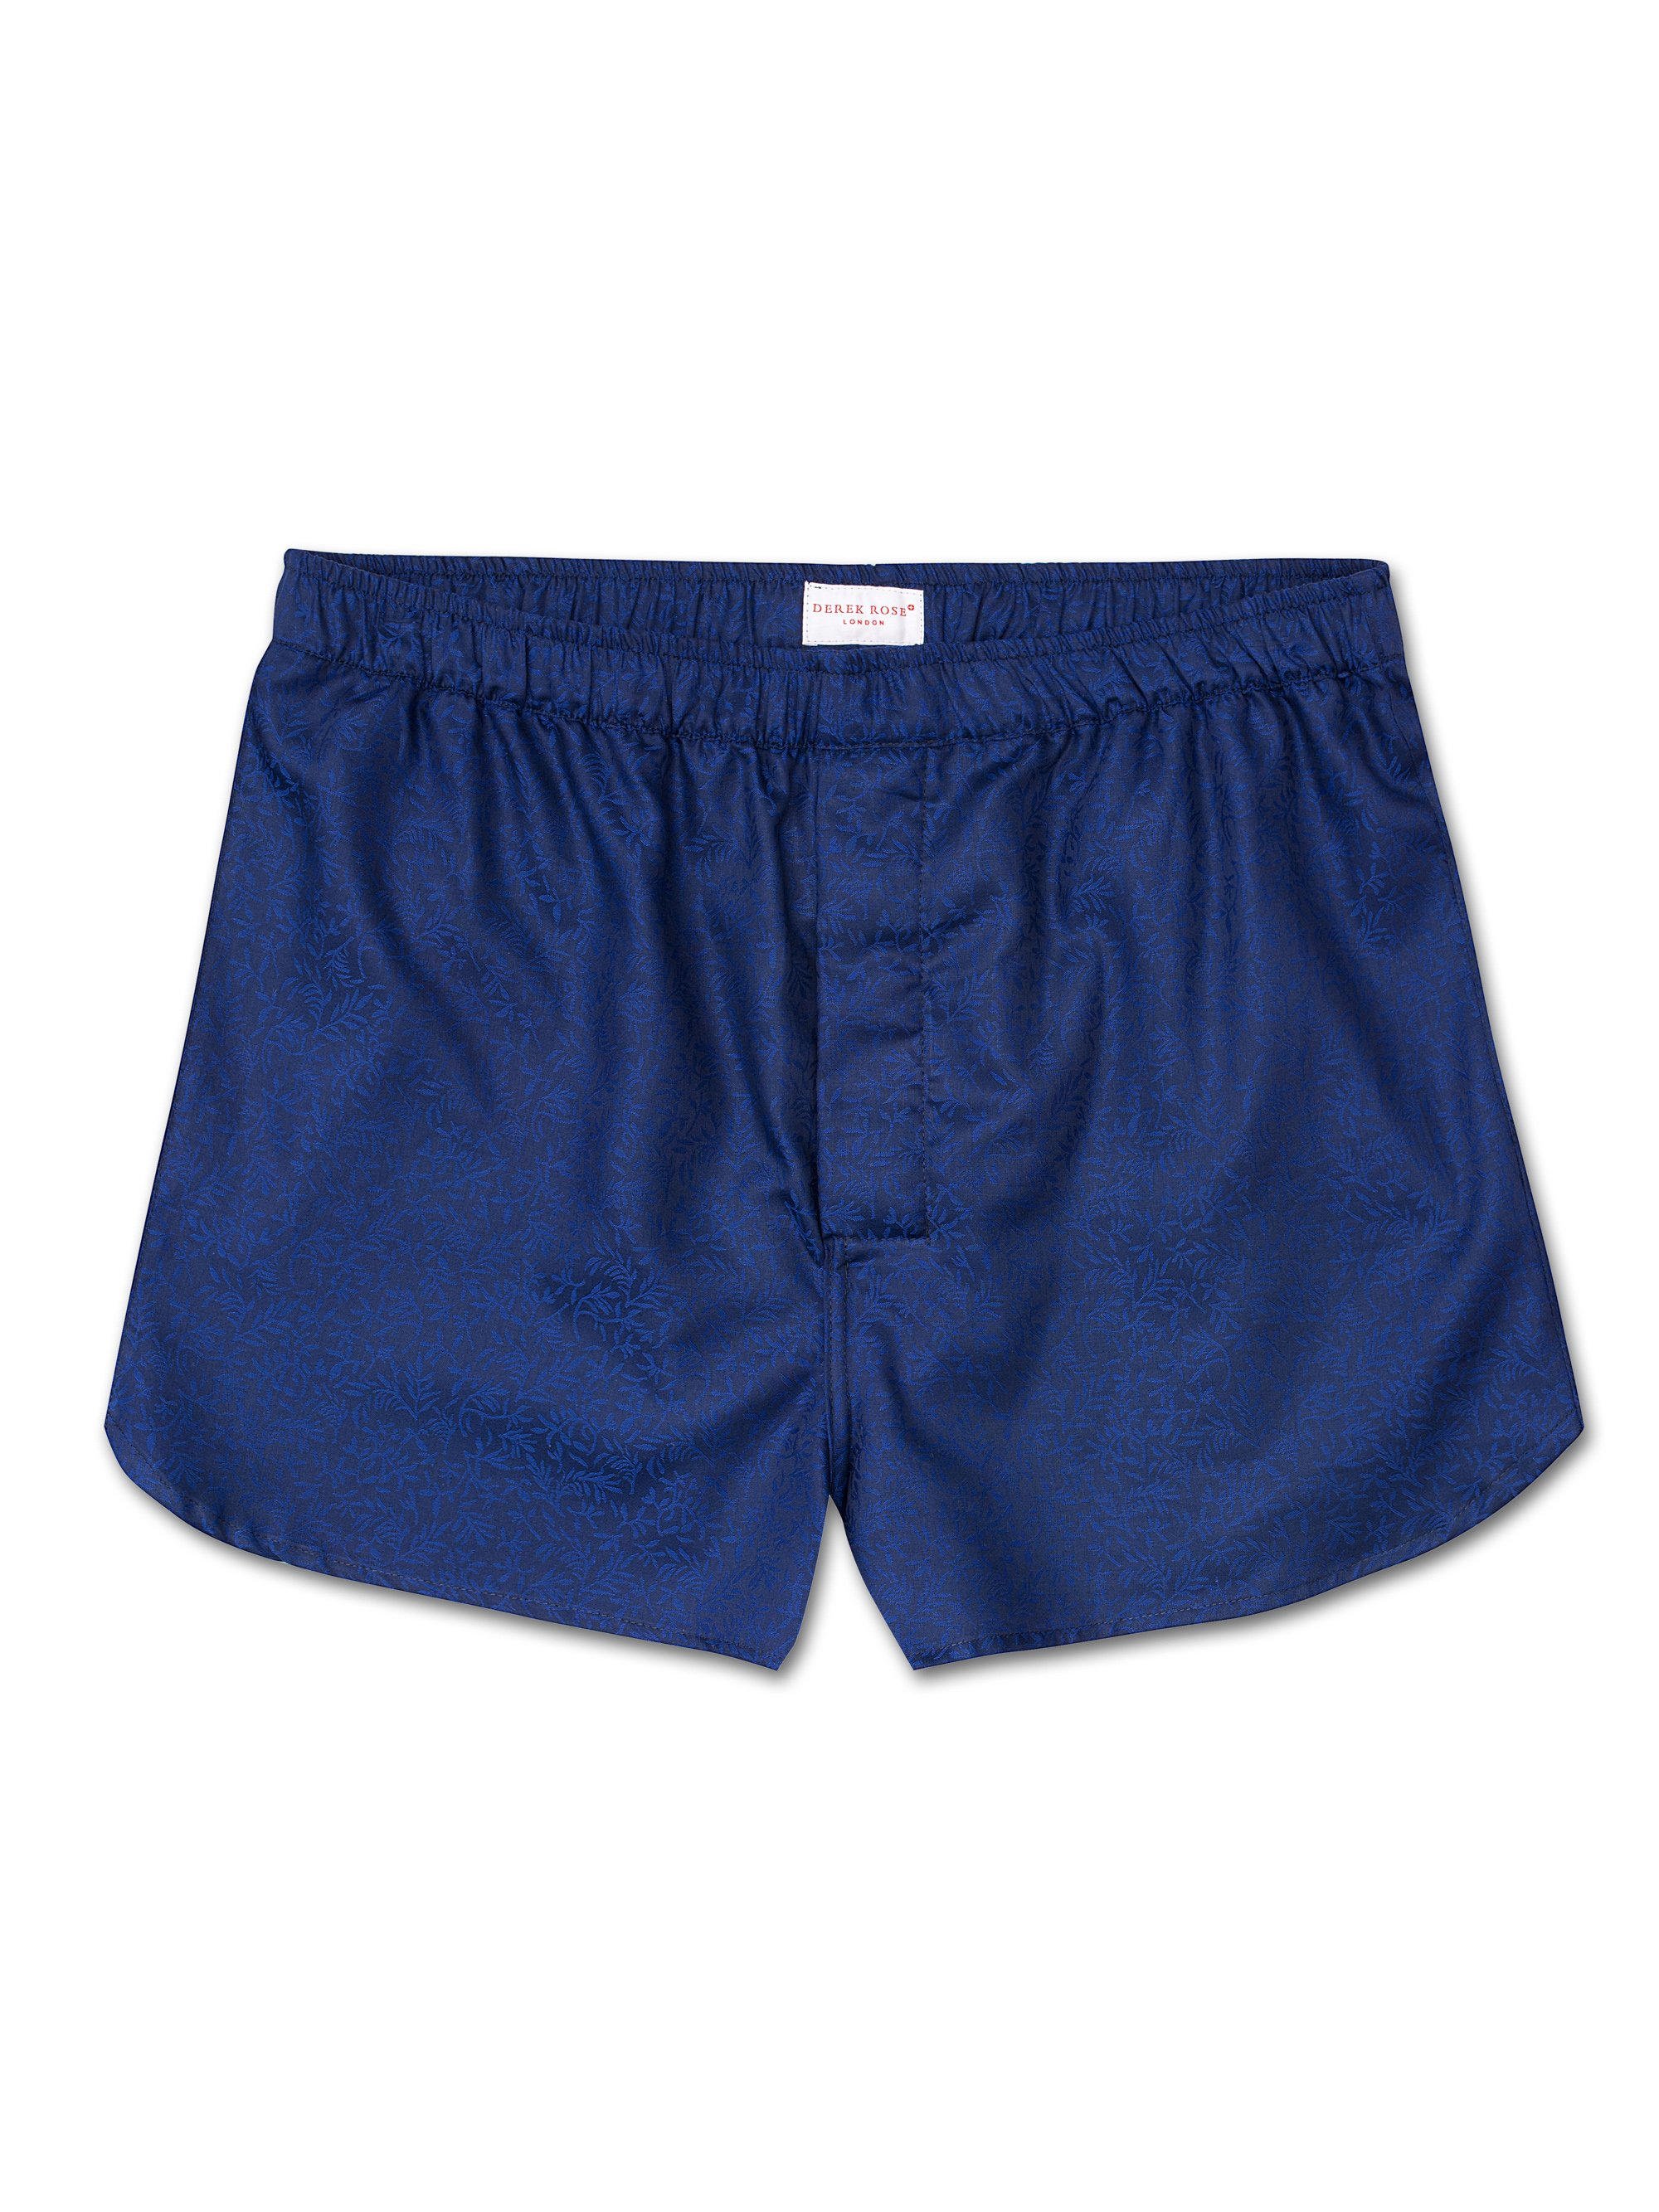 Men's Modern Fit Boxer Shorts Paris 7 Cotton Jacquard Cobalt